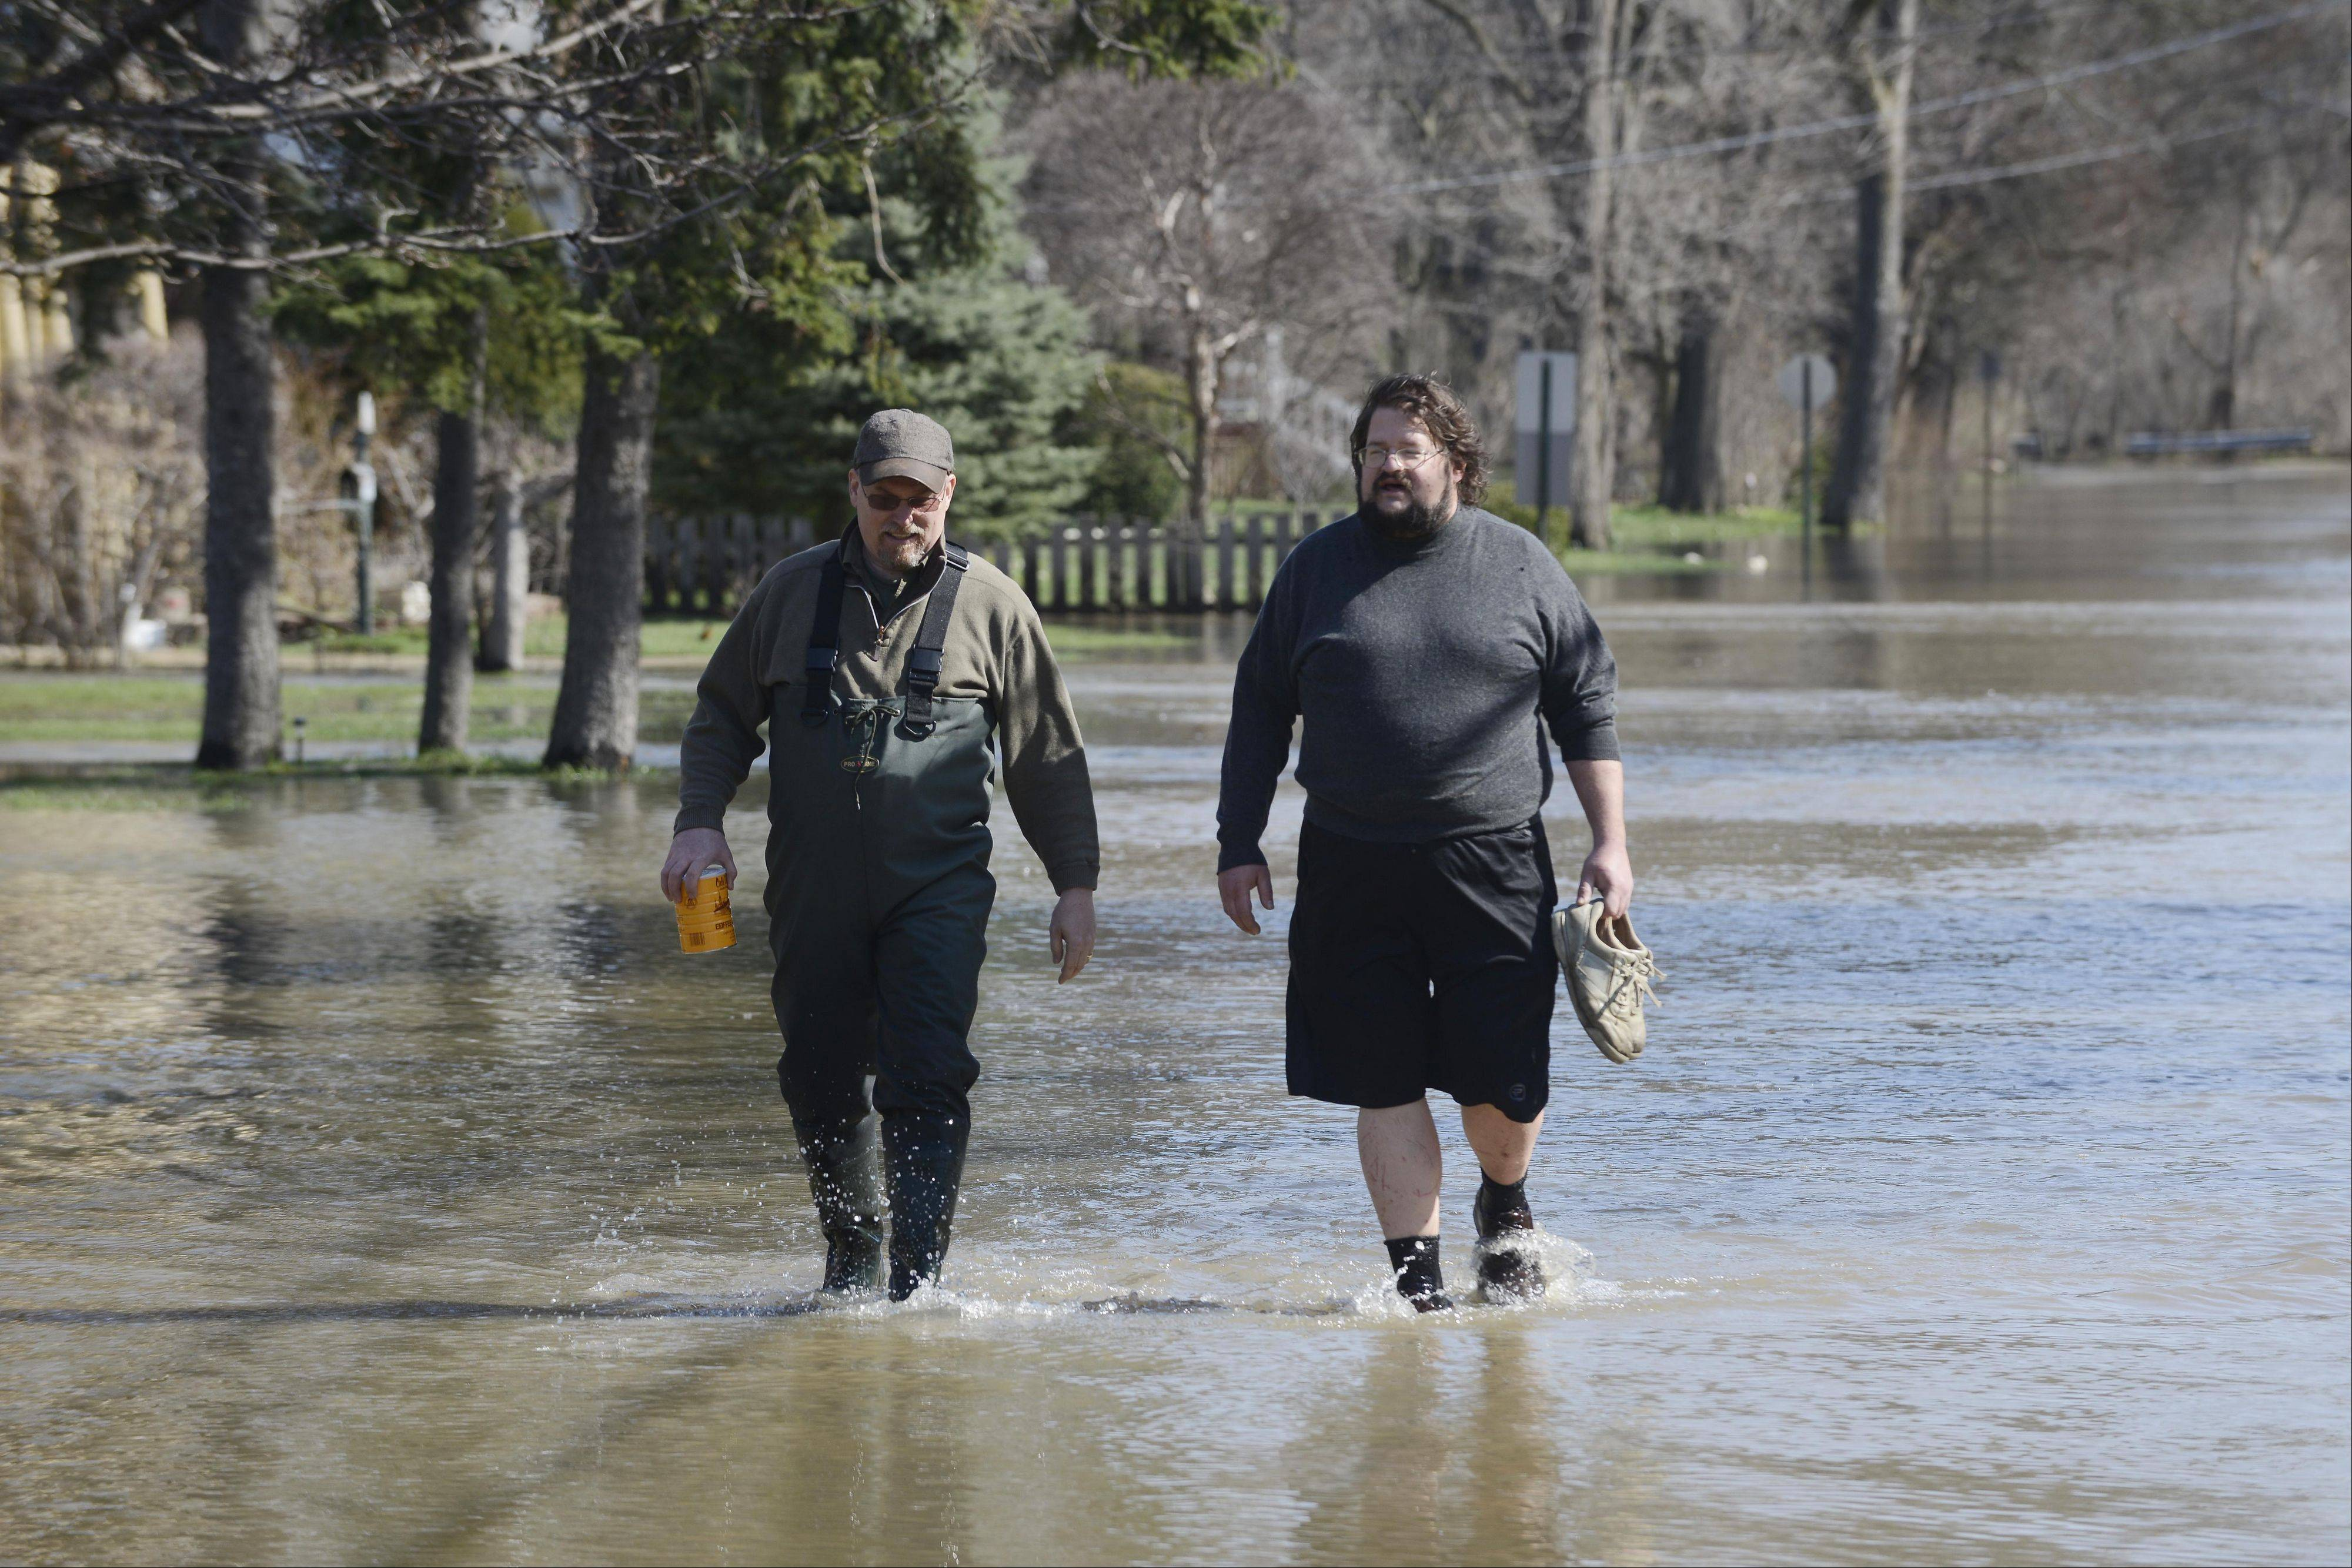 Kerry Chambers, left, and Andrij Karpenko walk along Hawthorne Lane as flooding from the Des Plaines River continues to recede from the Big Bend area in Des Plaines Monday.